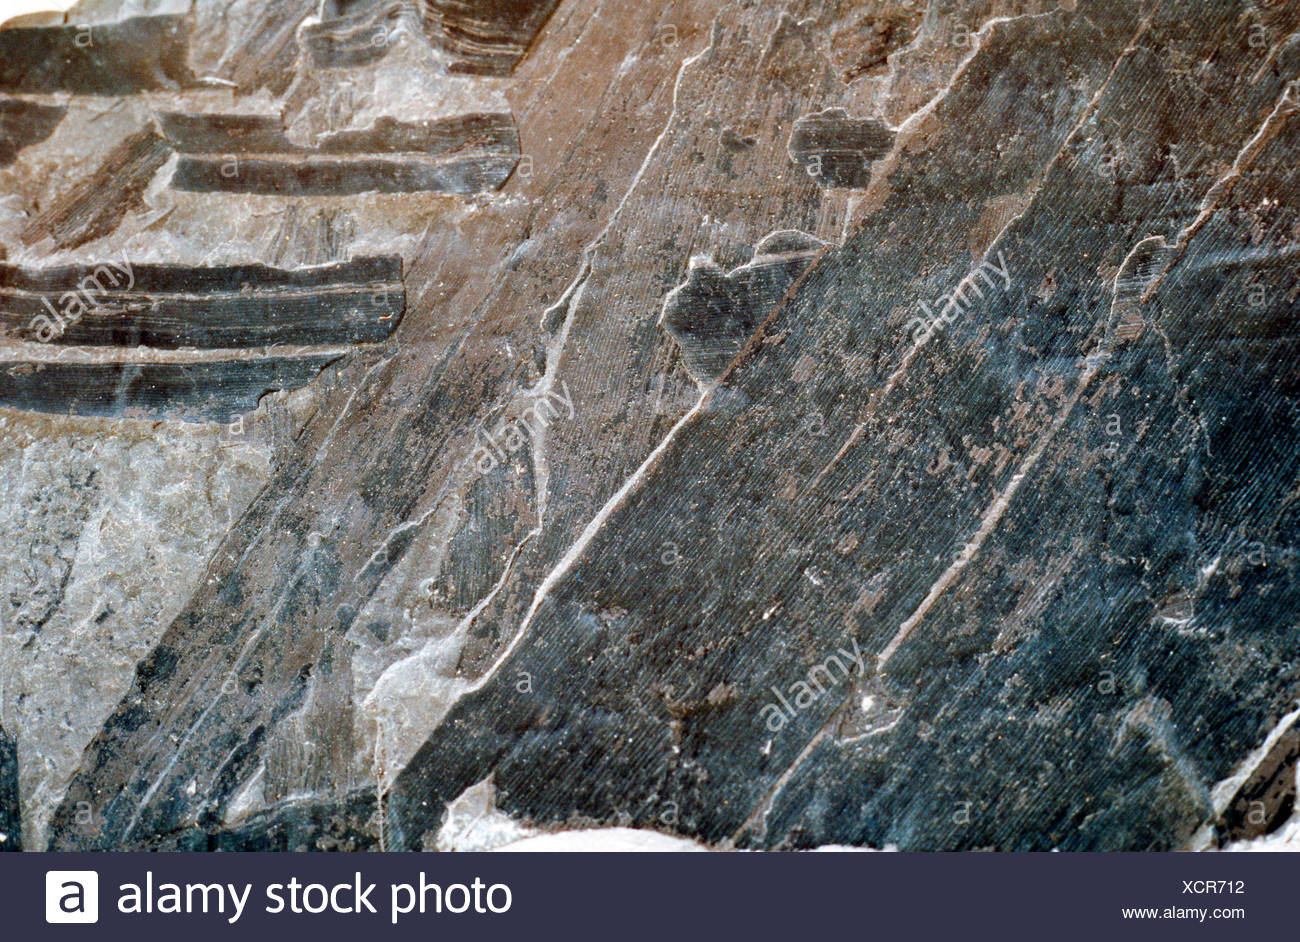 Cordaites principalis, fossil conifer, upper carbon, Germany, North Rhine-Westphalia - Stock Image